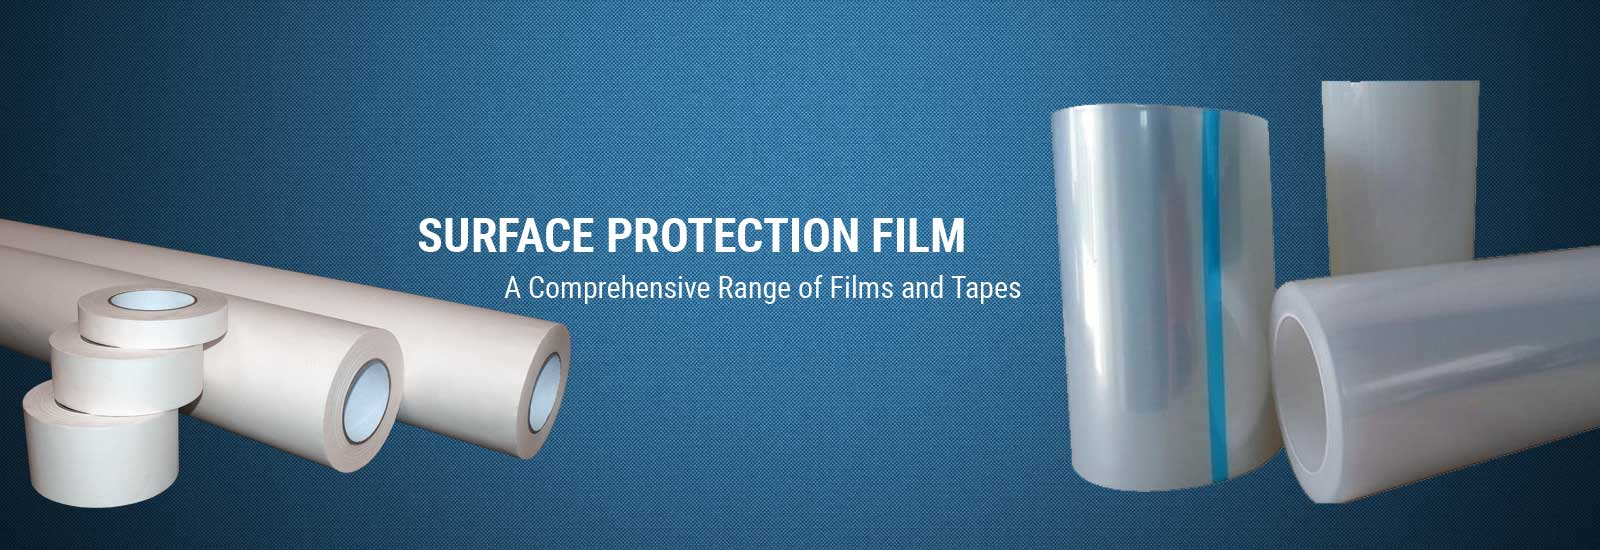 Surface Protection Film Manufacturers in Delhi